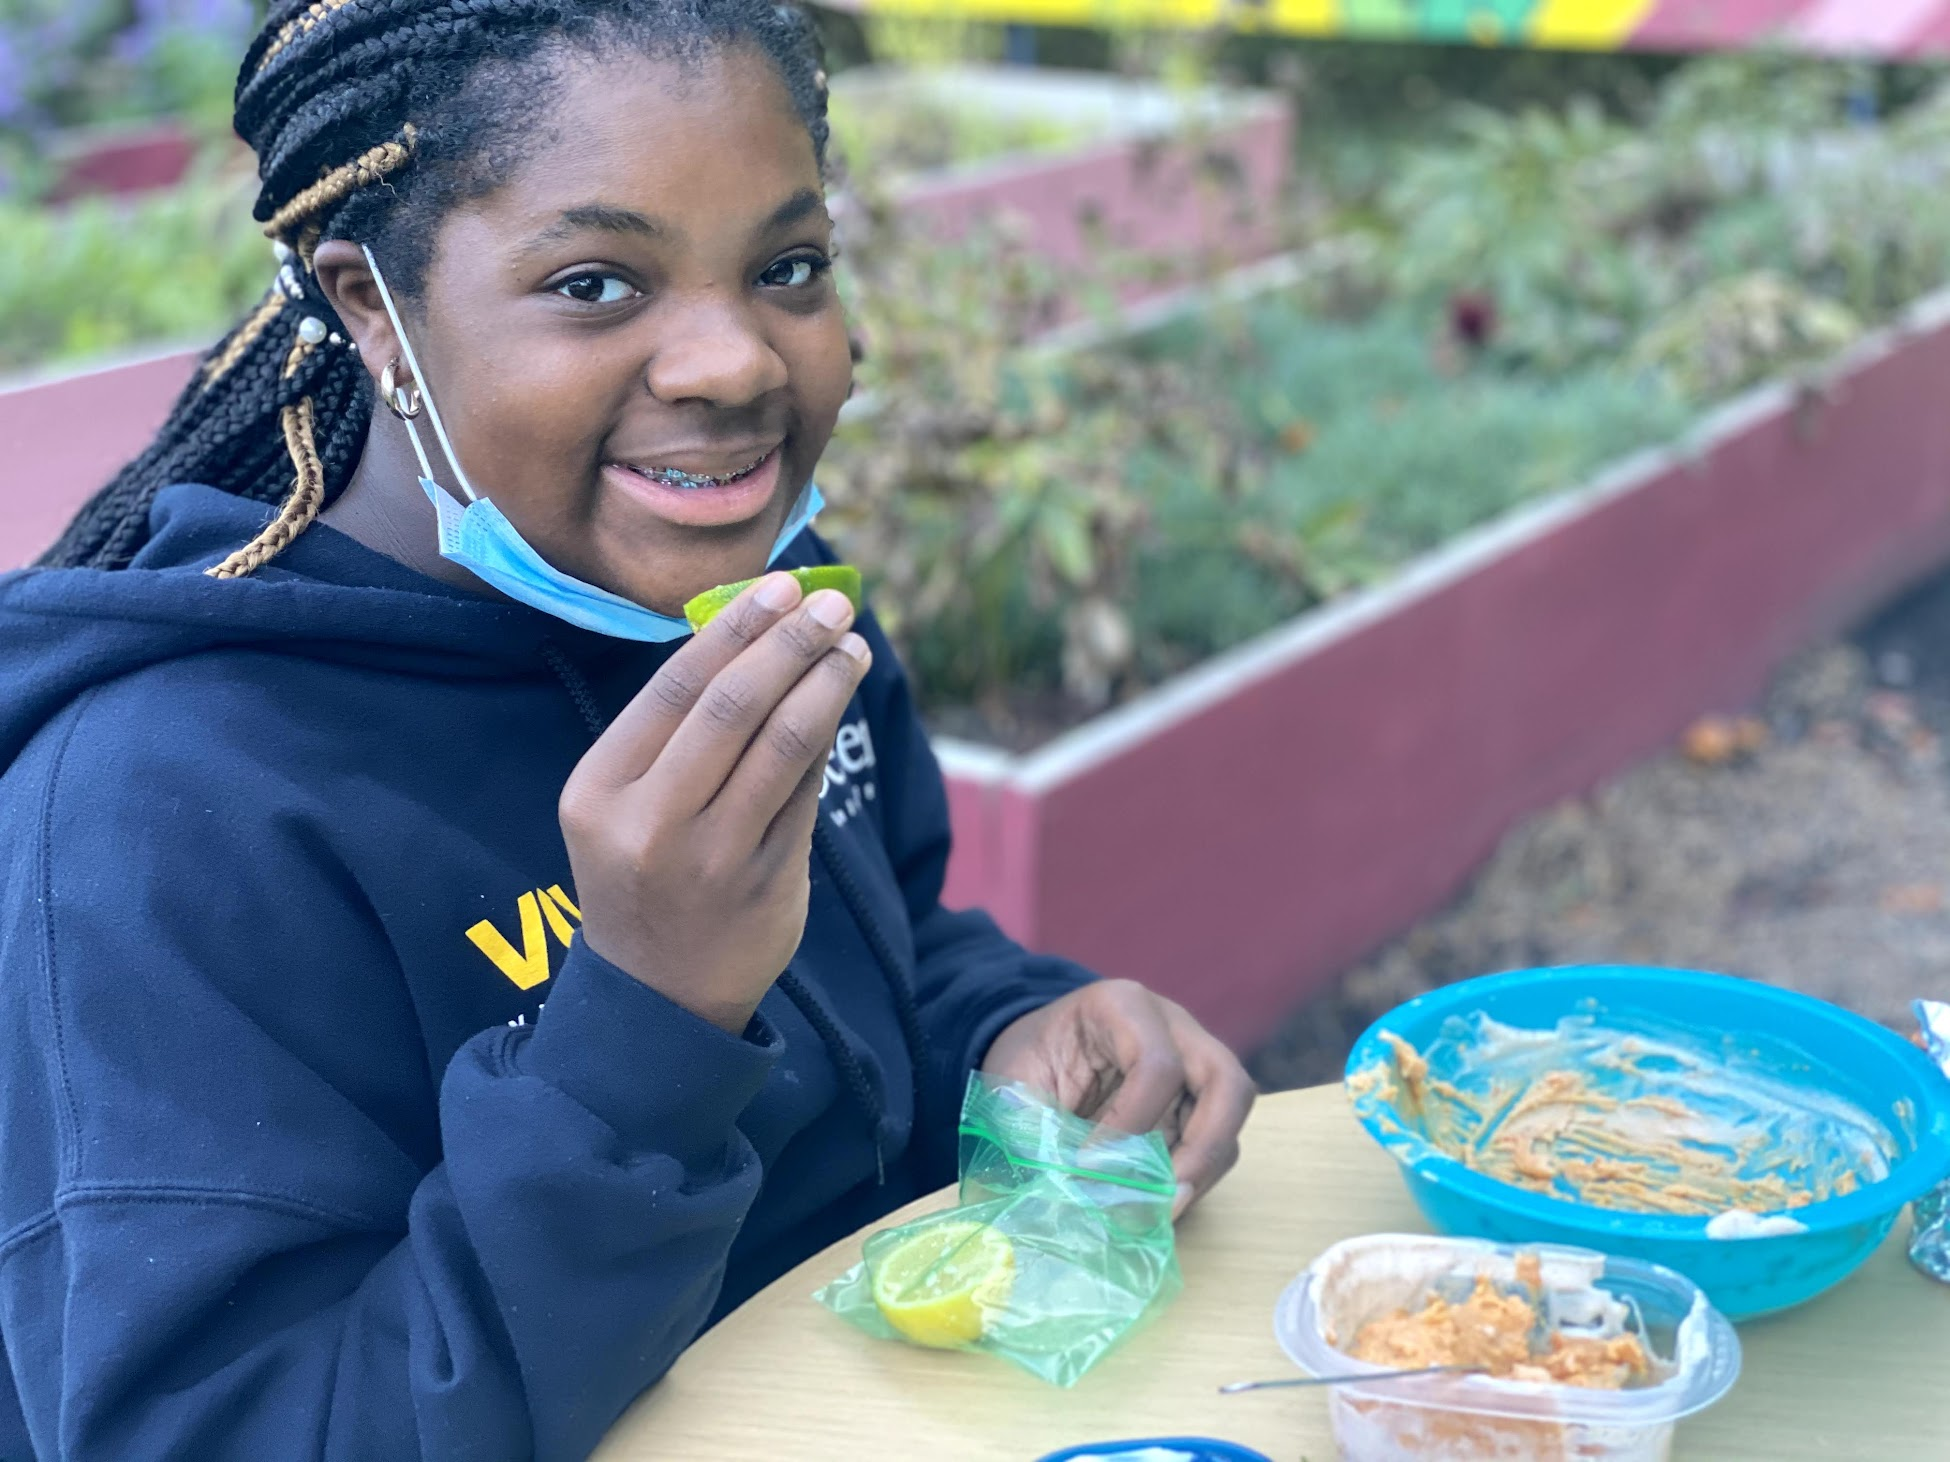 Happy Black girl having a snack outdoors